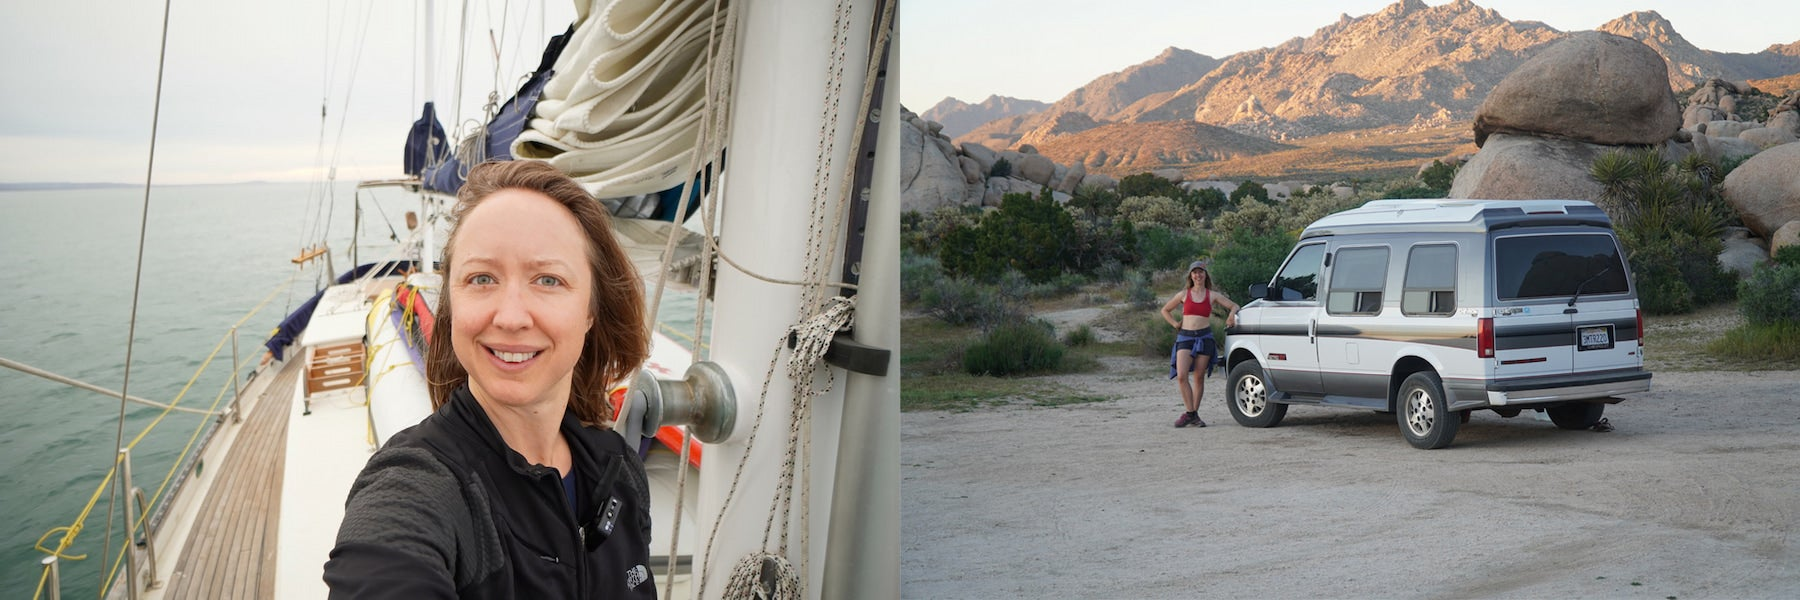 Kristin Hanes of The Wayward Home on her sailboat and beside her van.